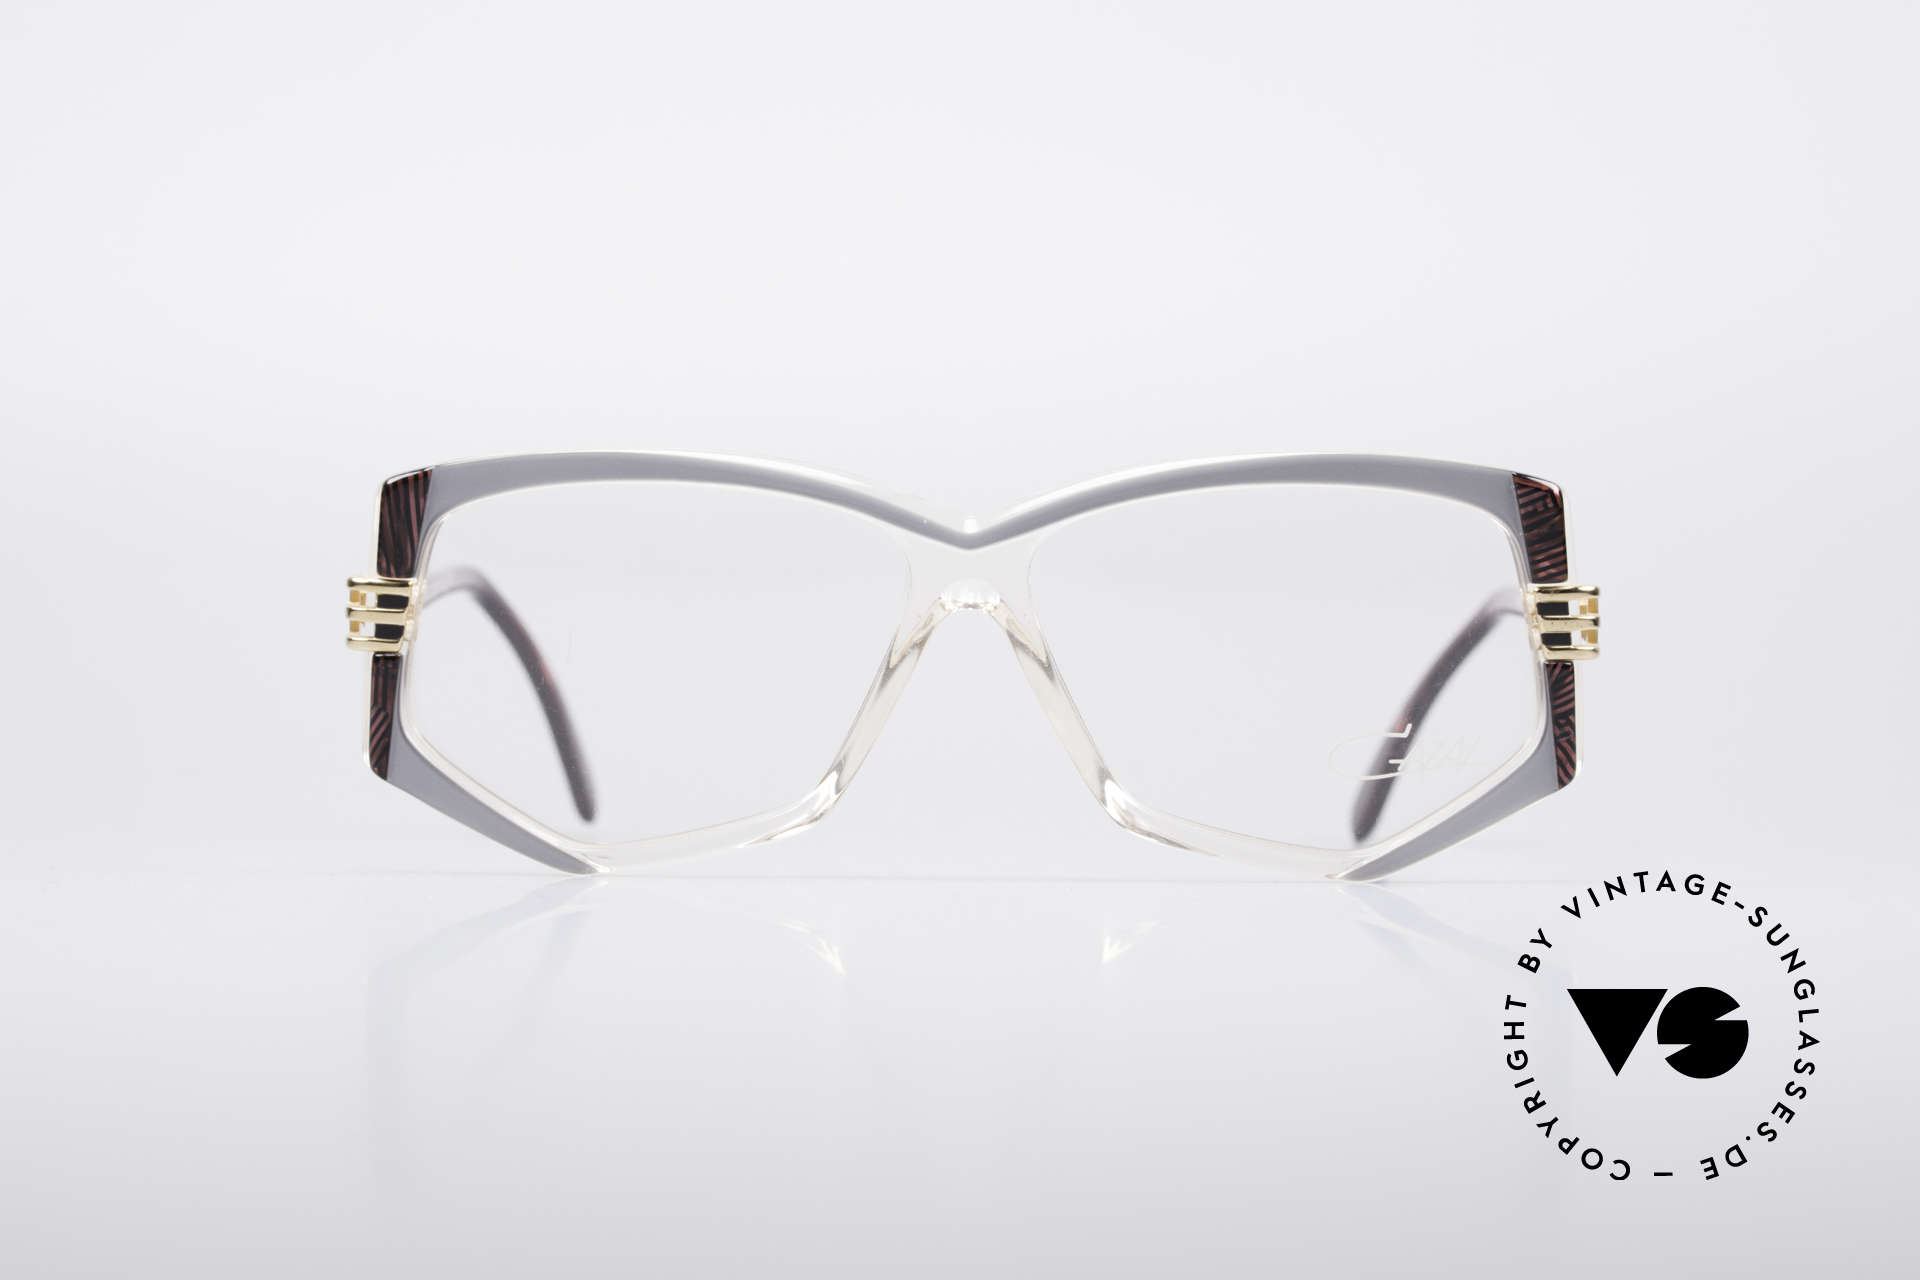 Cazal 322 80's West Germany Cazal, very complex frame coloring (check the pictures!), Made for Women